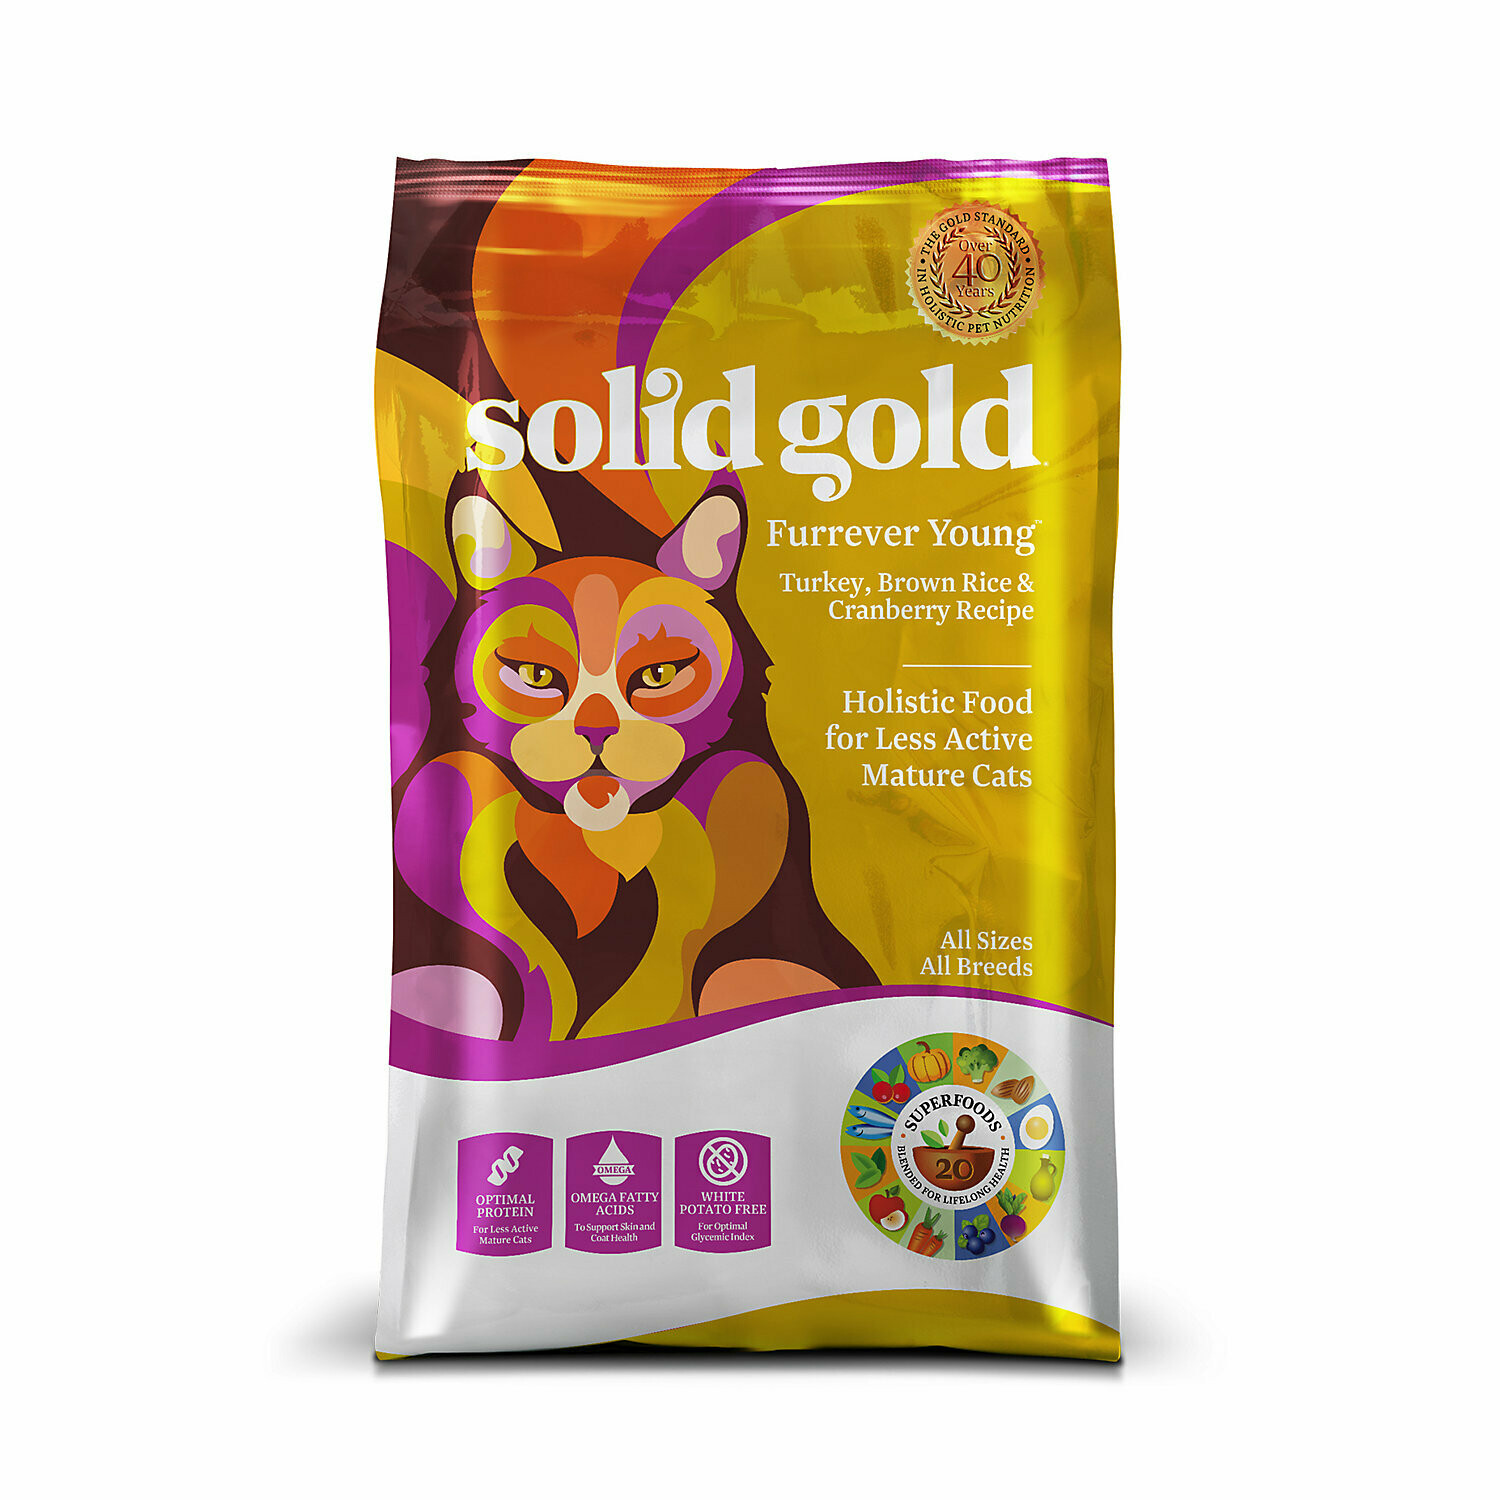 SOLID GOLD FURREVER YOUNG TURKEY, BROWN RICE & CRANBERRY SENIOR CAT FOOD 4 LBS (9/18) (A.J4)